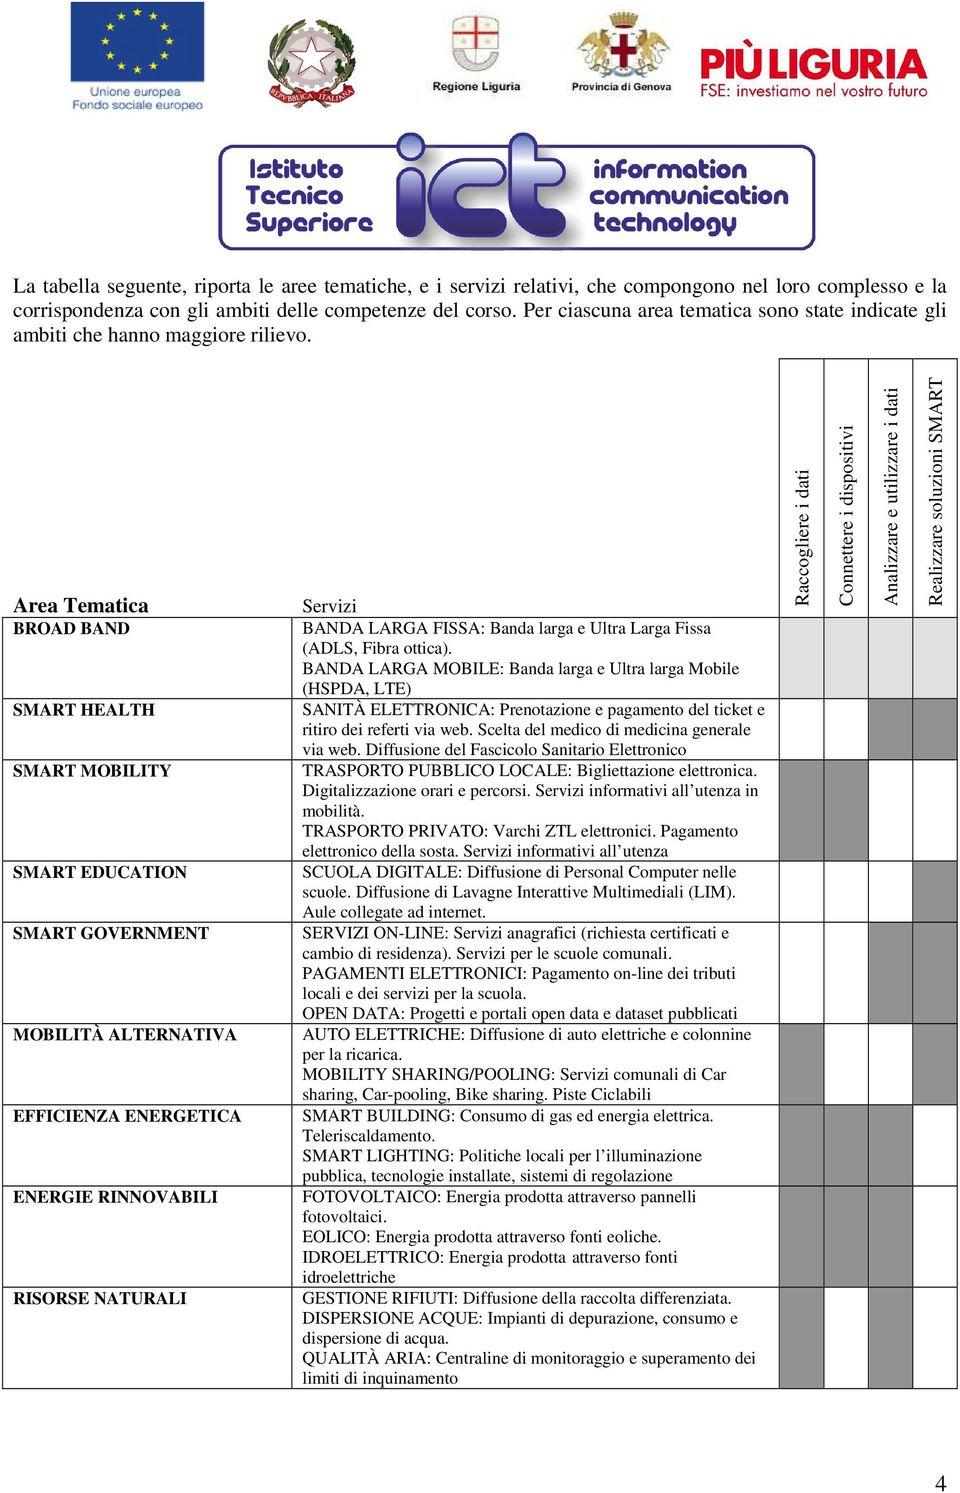 Area Tematica BROAD BAND SMART HEALTH SMART MOBILITY SMART EDUCATION SMART GOVERNMENT MOBILITÀ ALTERNATIVA EFFICIENZA ENERGETICA ENERGIE RINNOVABILI RISORSE NATURALI Servizi BANDA LARGA FISSA: Banda